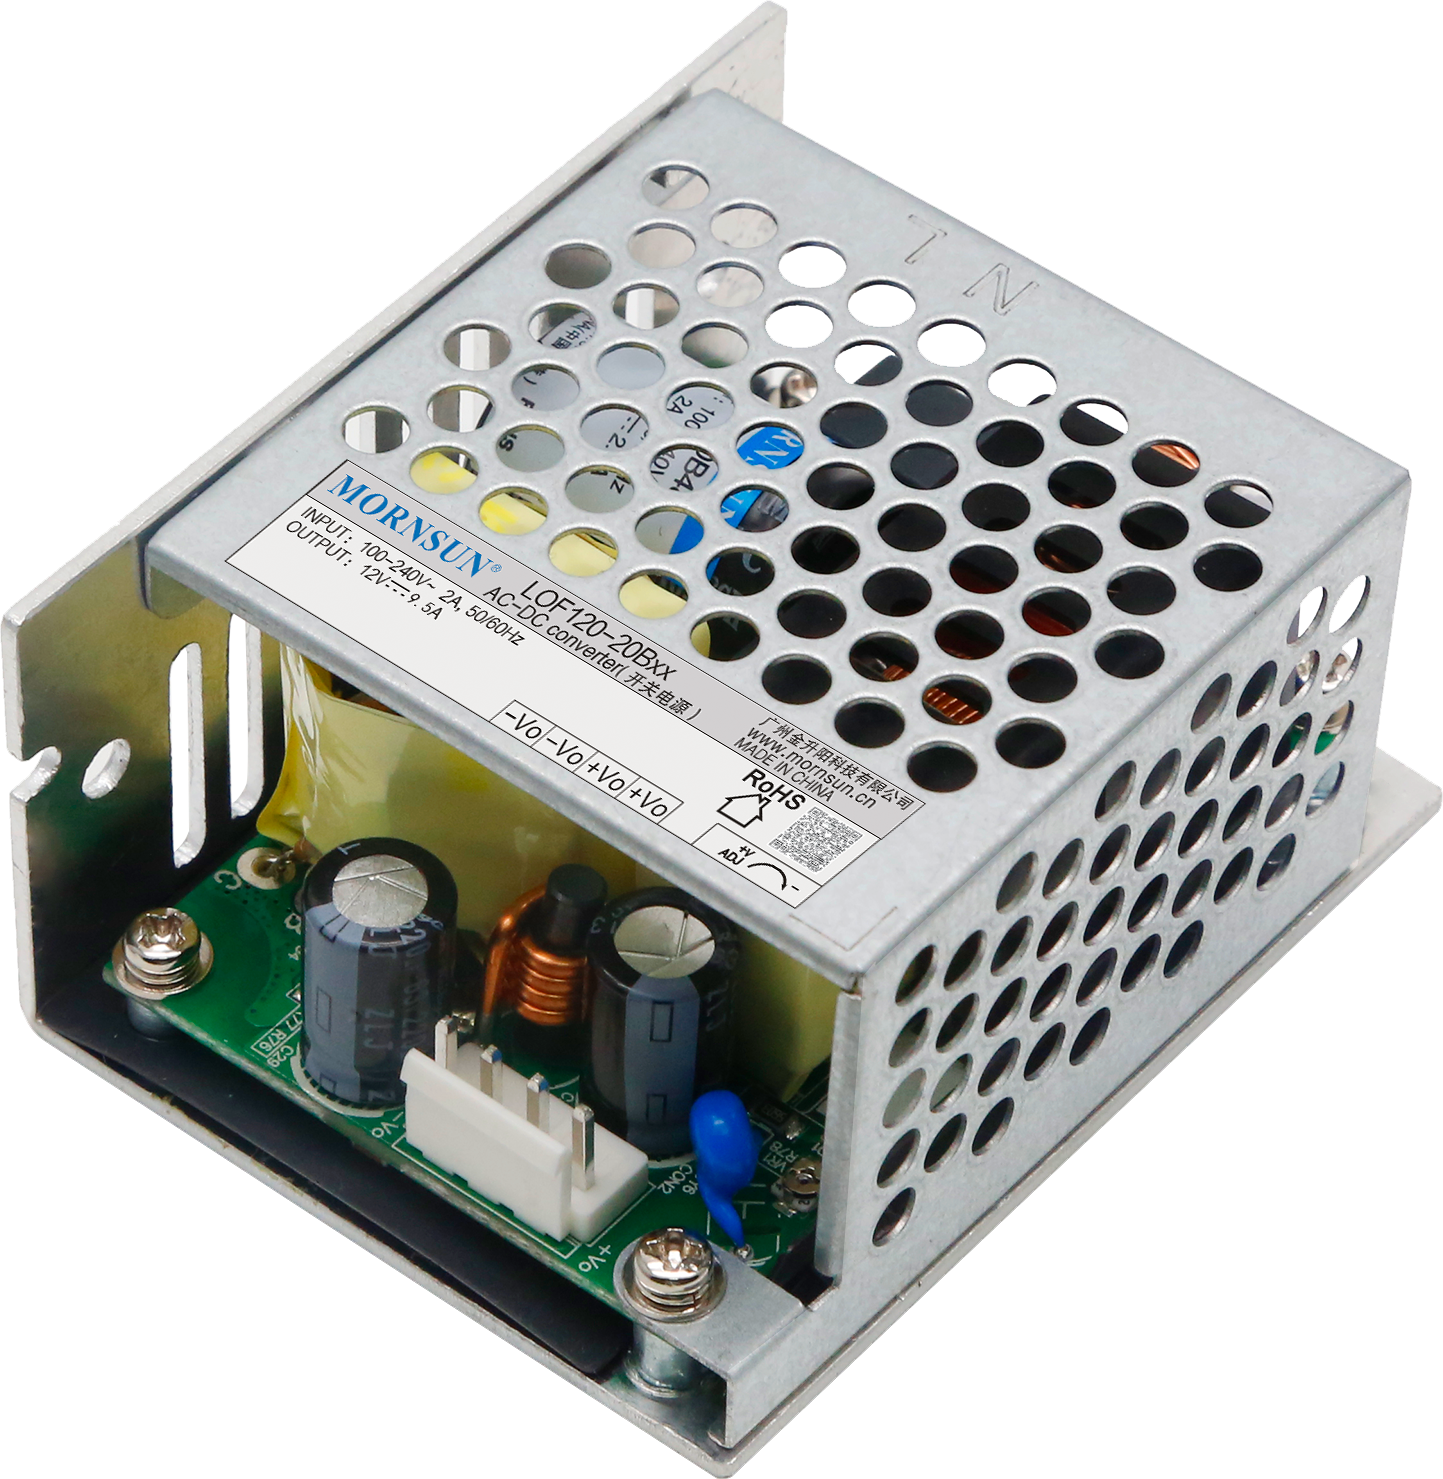 Mornsun LOF120 enclosed medical power supply